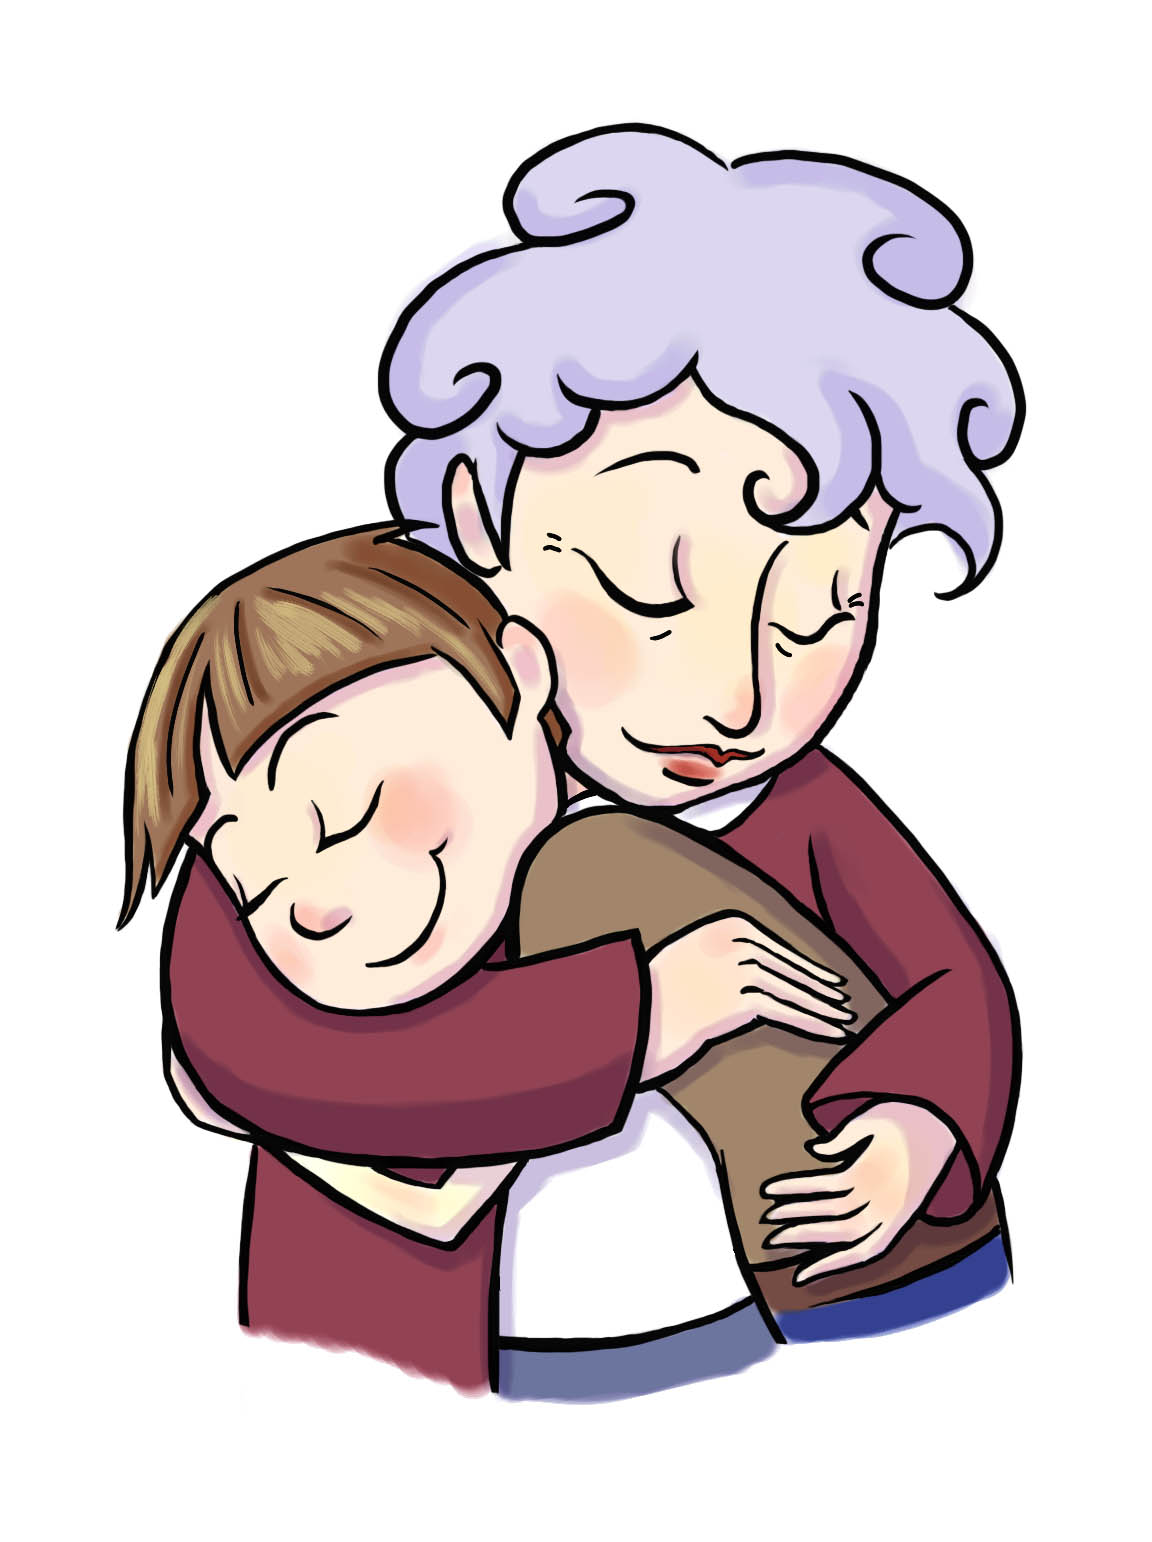 Grandsons clipart image free download Free Grandson Cliparts, Download Free Clip Art, Free Clip Art on ... image free download